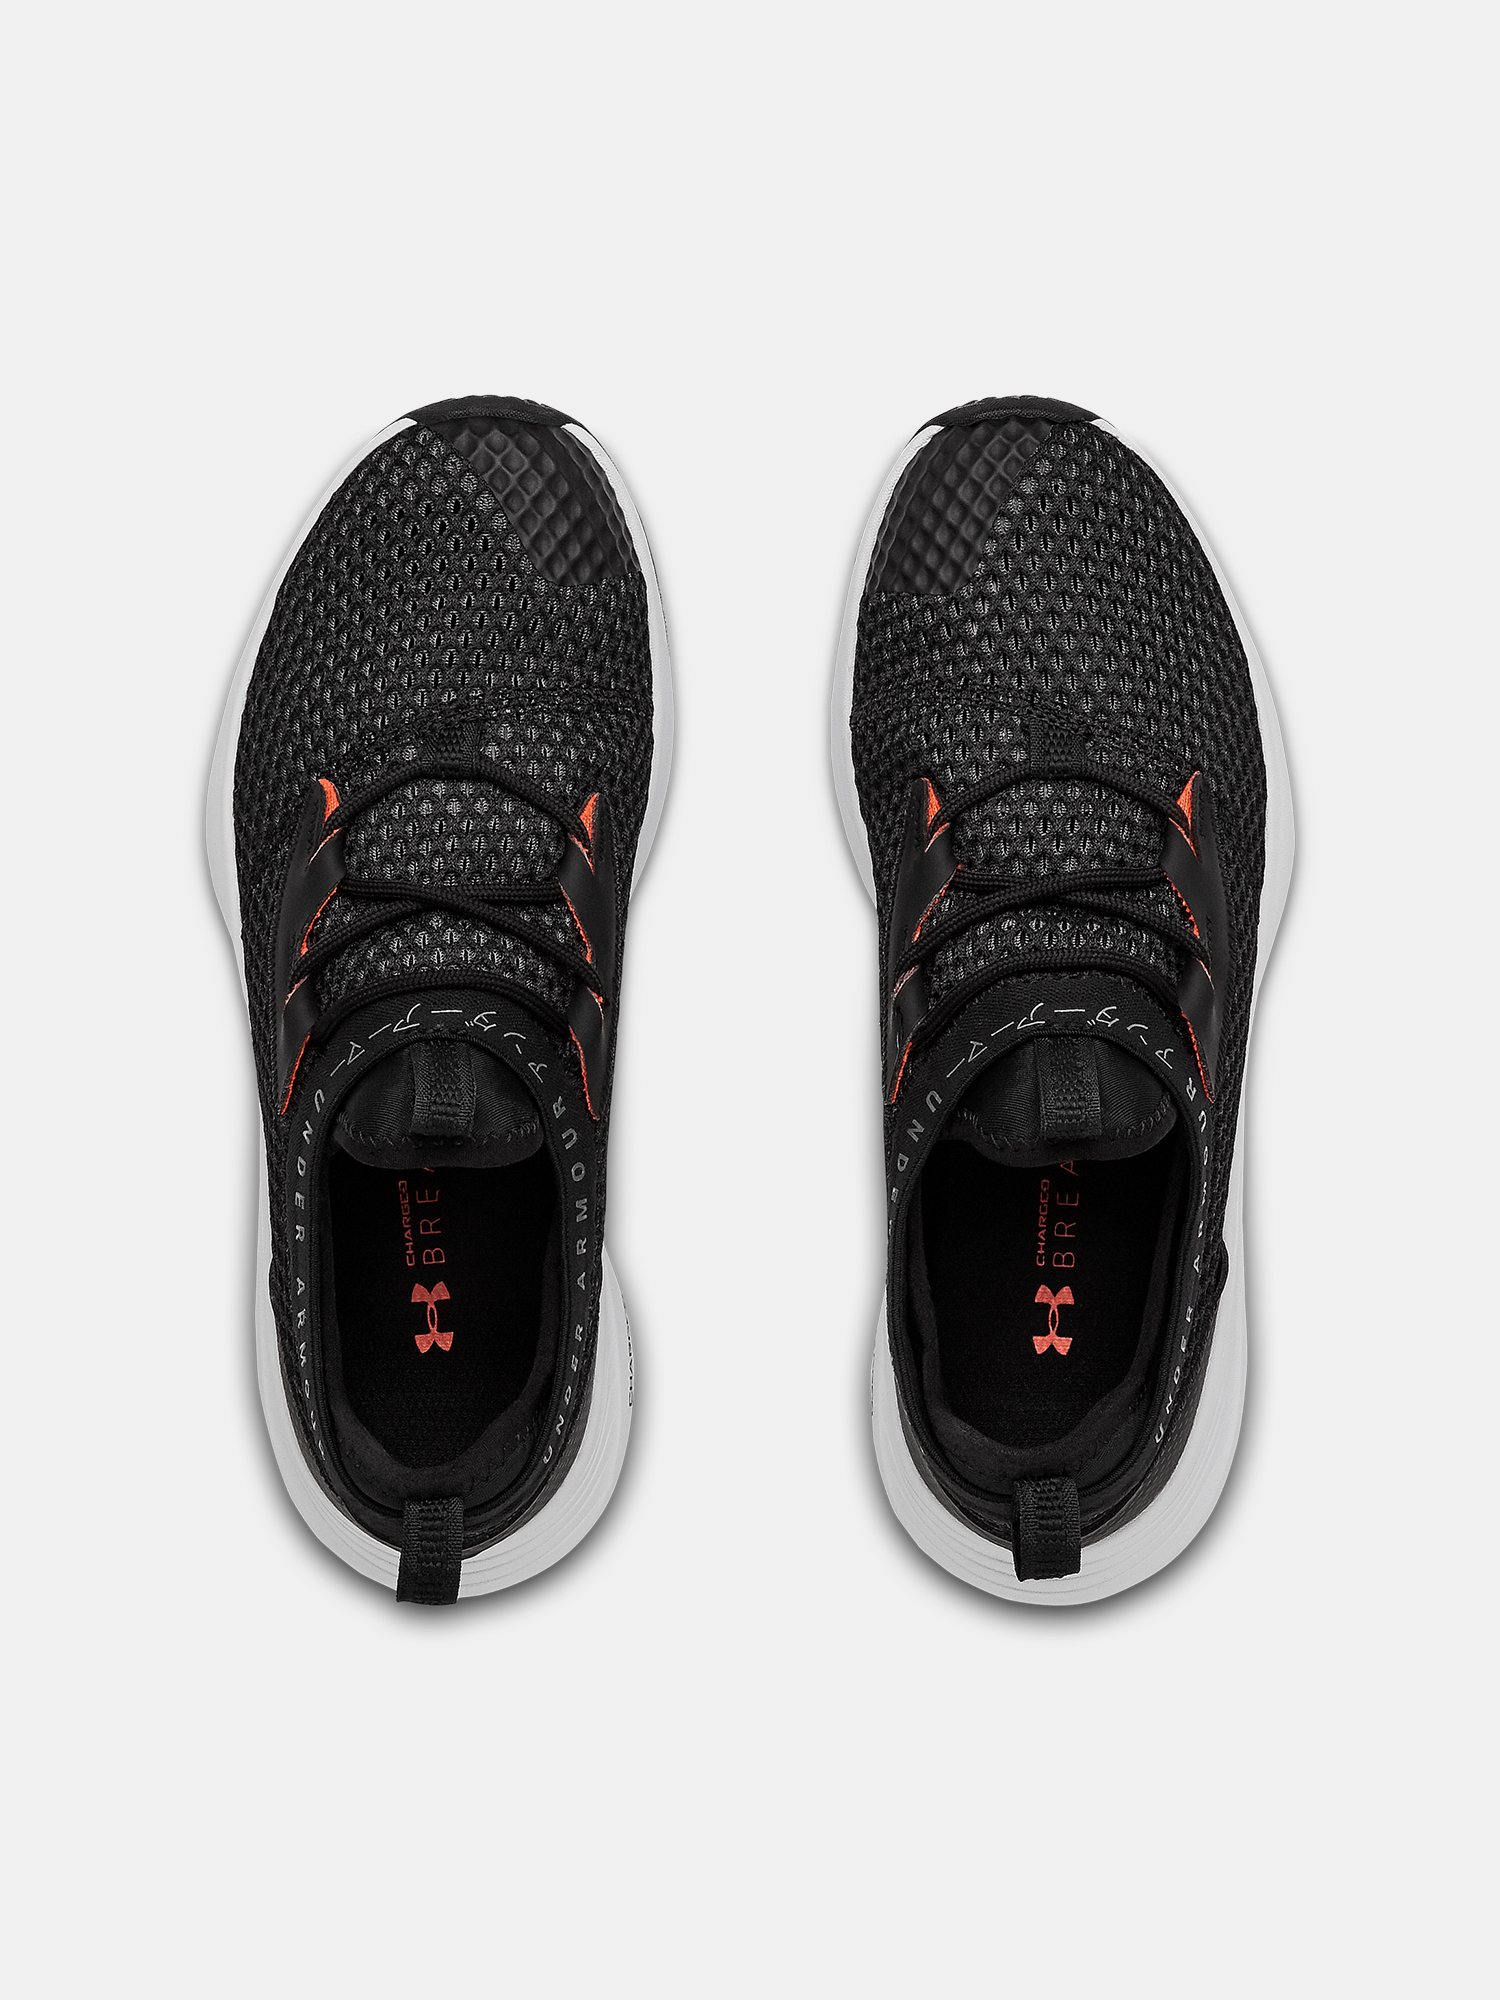 Boty Under Armour W Charged Breathe Smrzd (5)